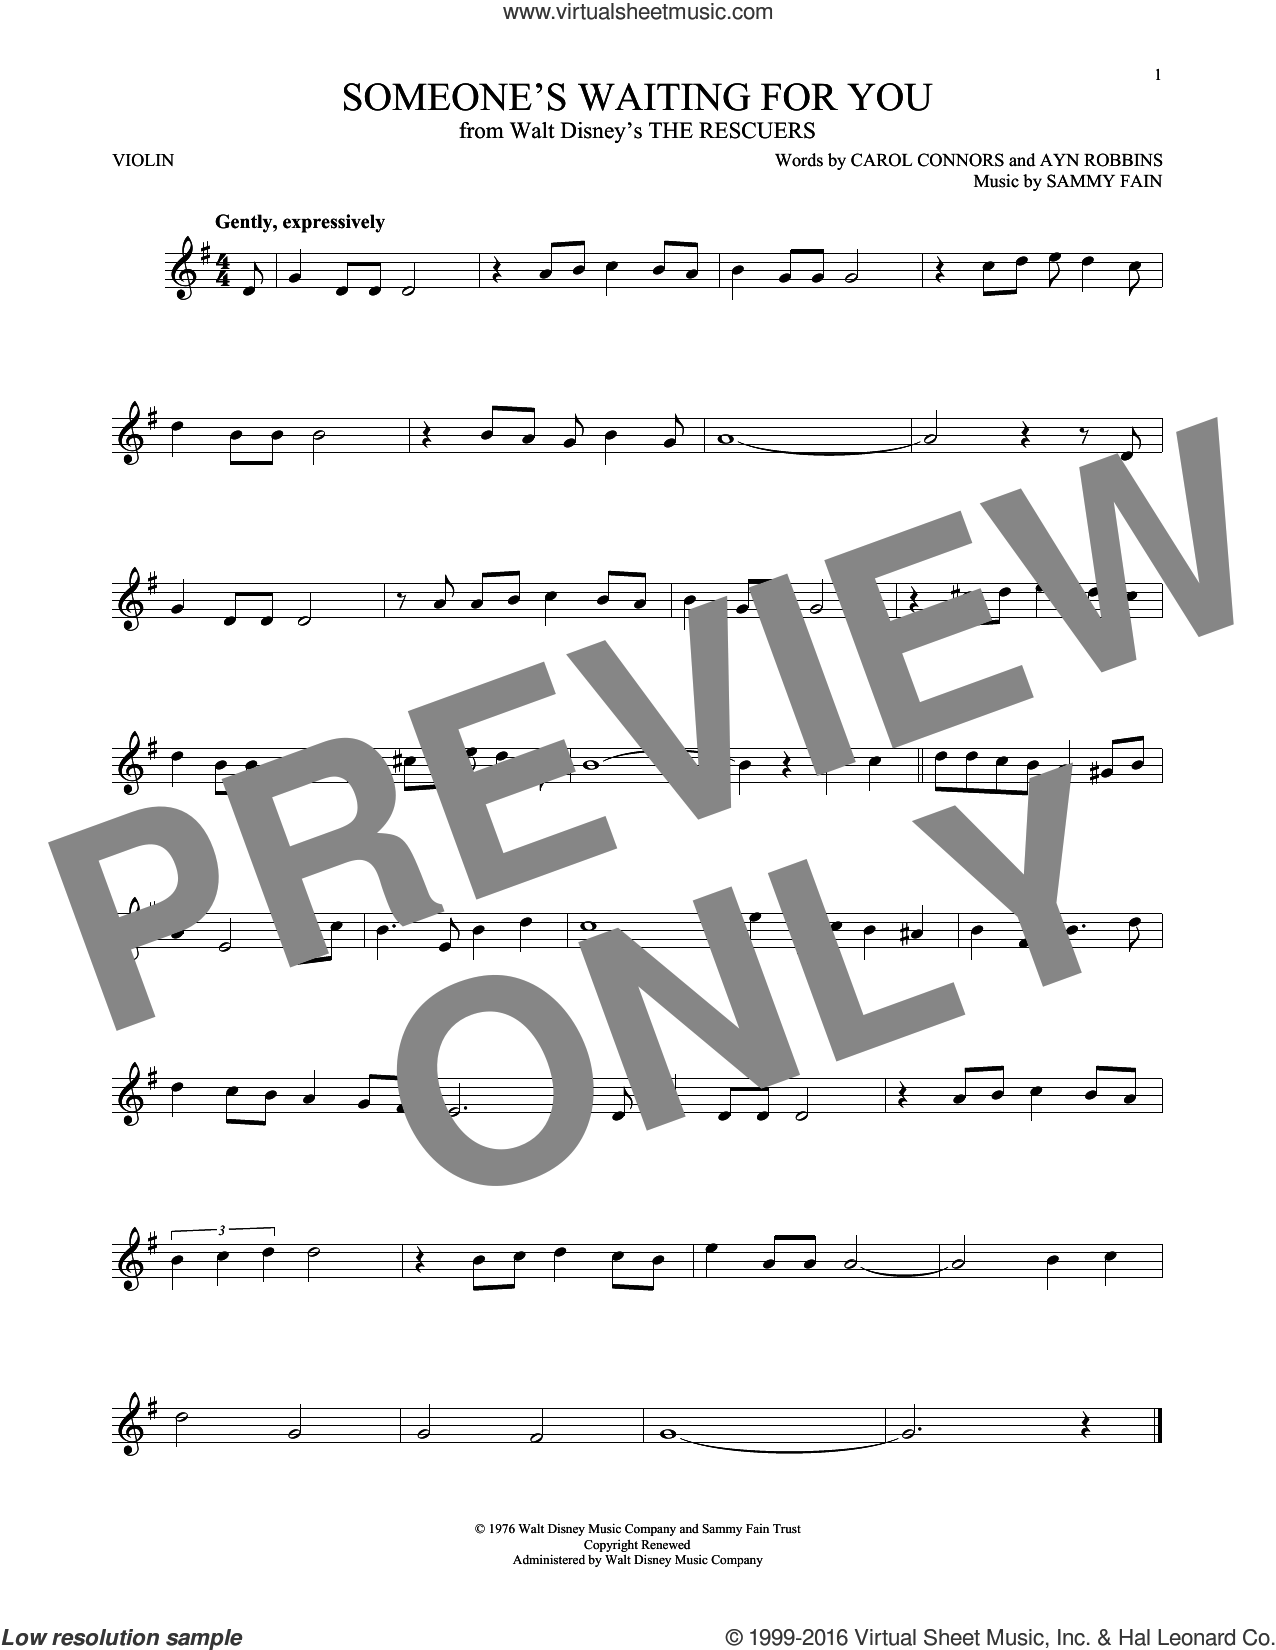 Someone's Waiting For You sheet music for violin solo by Sammy Fain, Ayn Robbins and Carol Connors, intermediate skill level